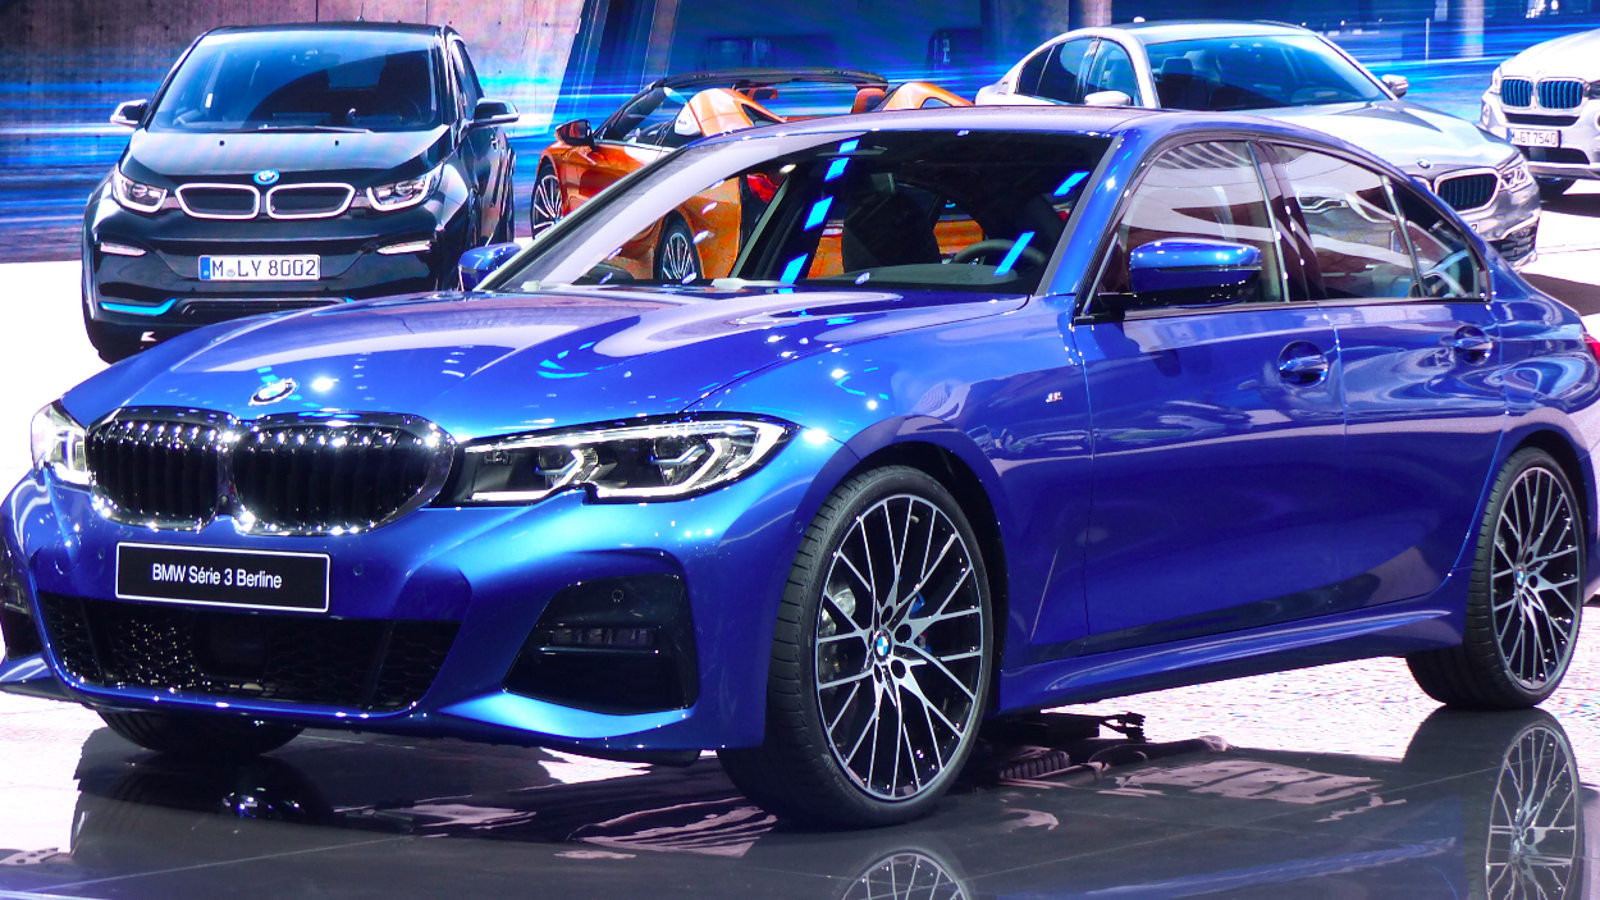 2019 Bmw 3 Series Heres Everything All New And Different 318ti Engine Diagram Intake